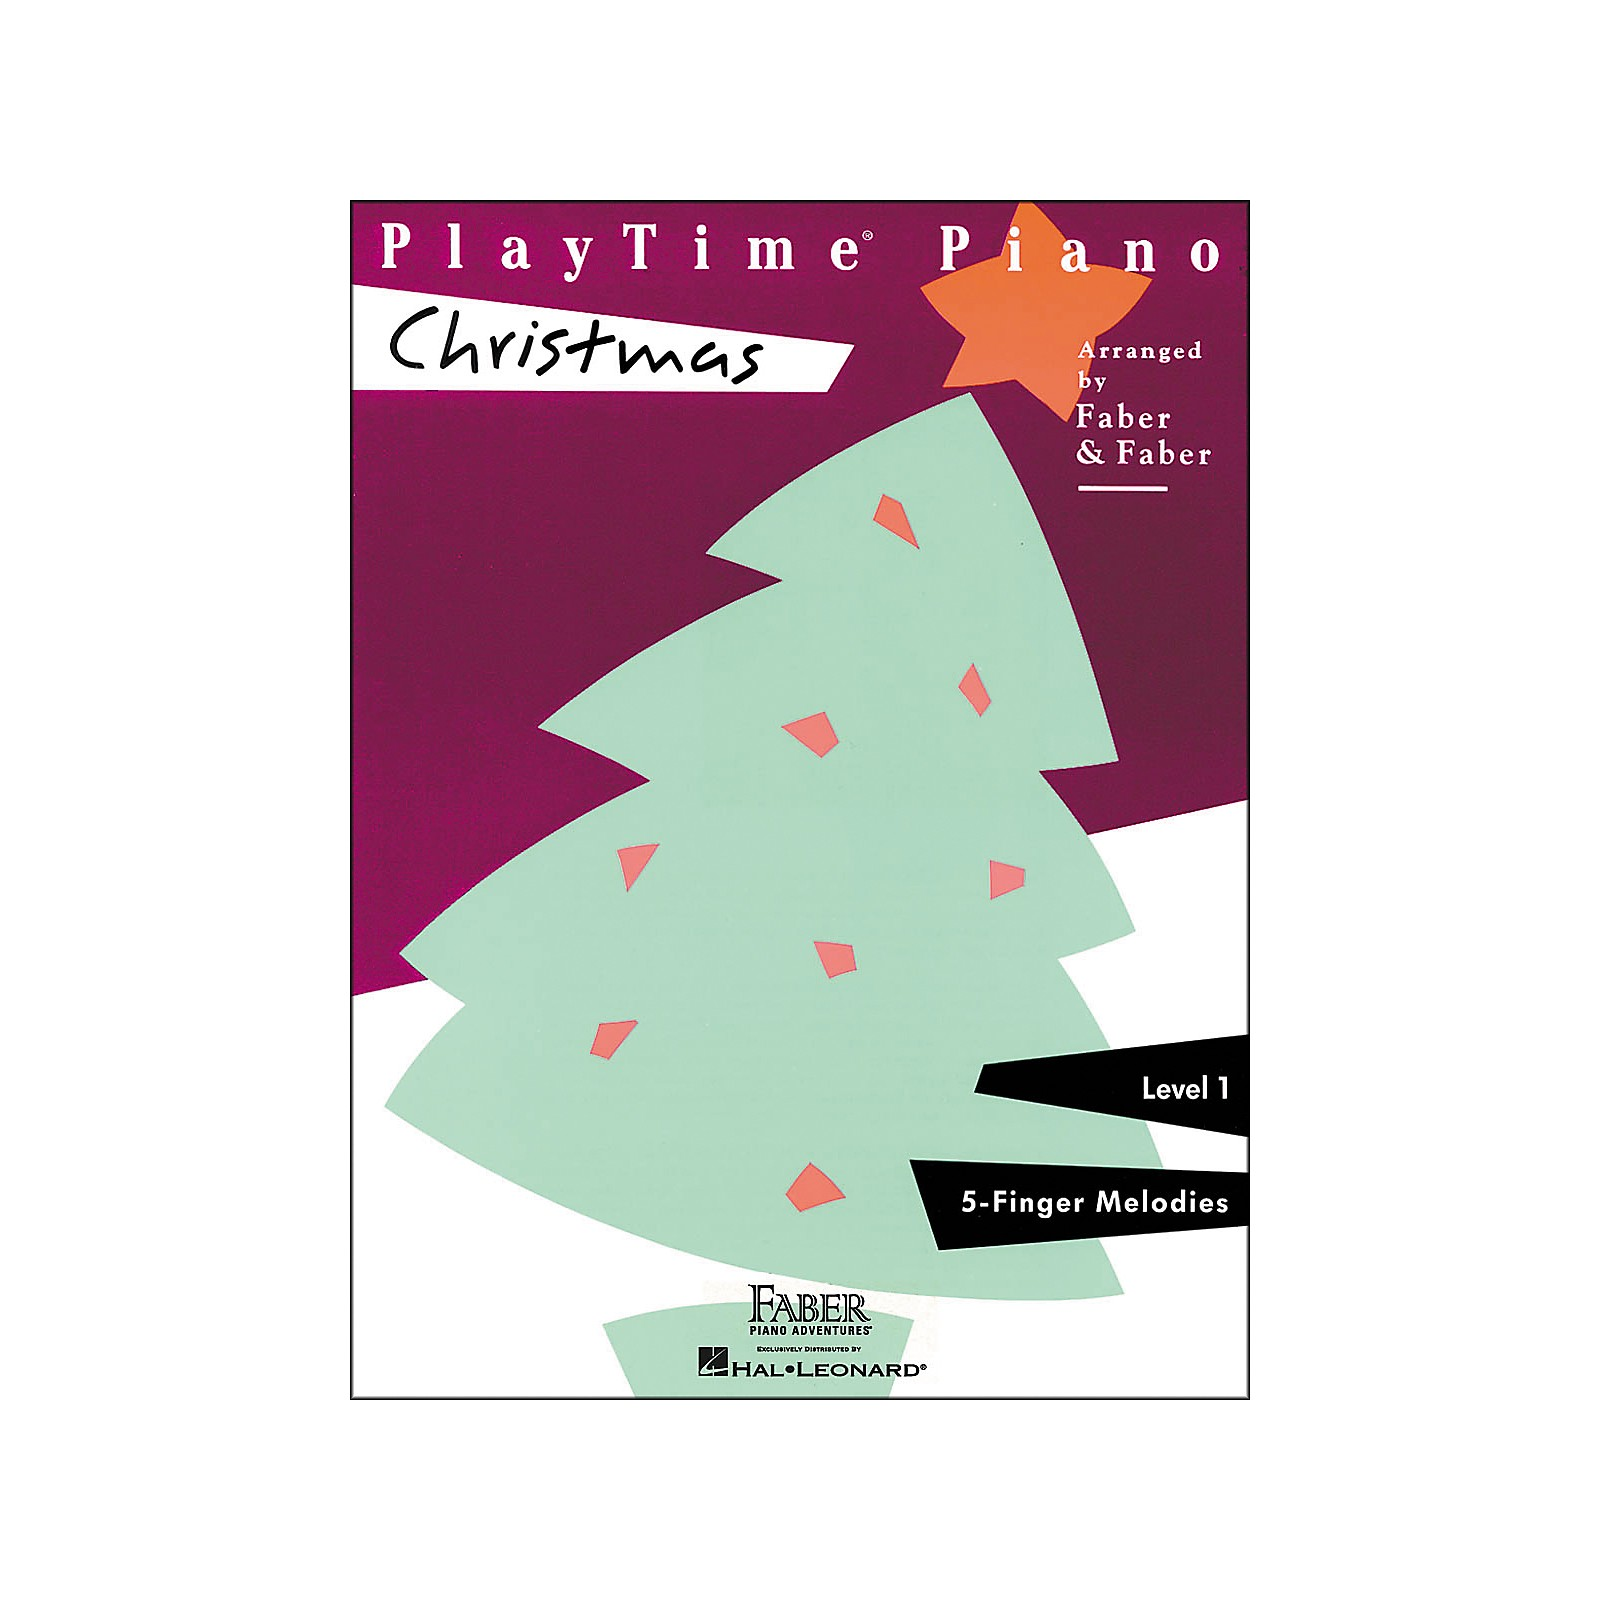 Faber Piano Adventures Playtime Piano Christmas Level 1 F-Finger Melodies - Faber Piano